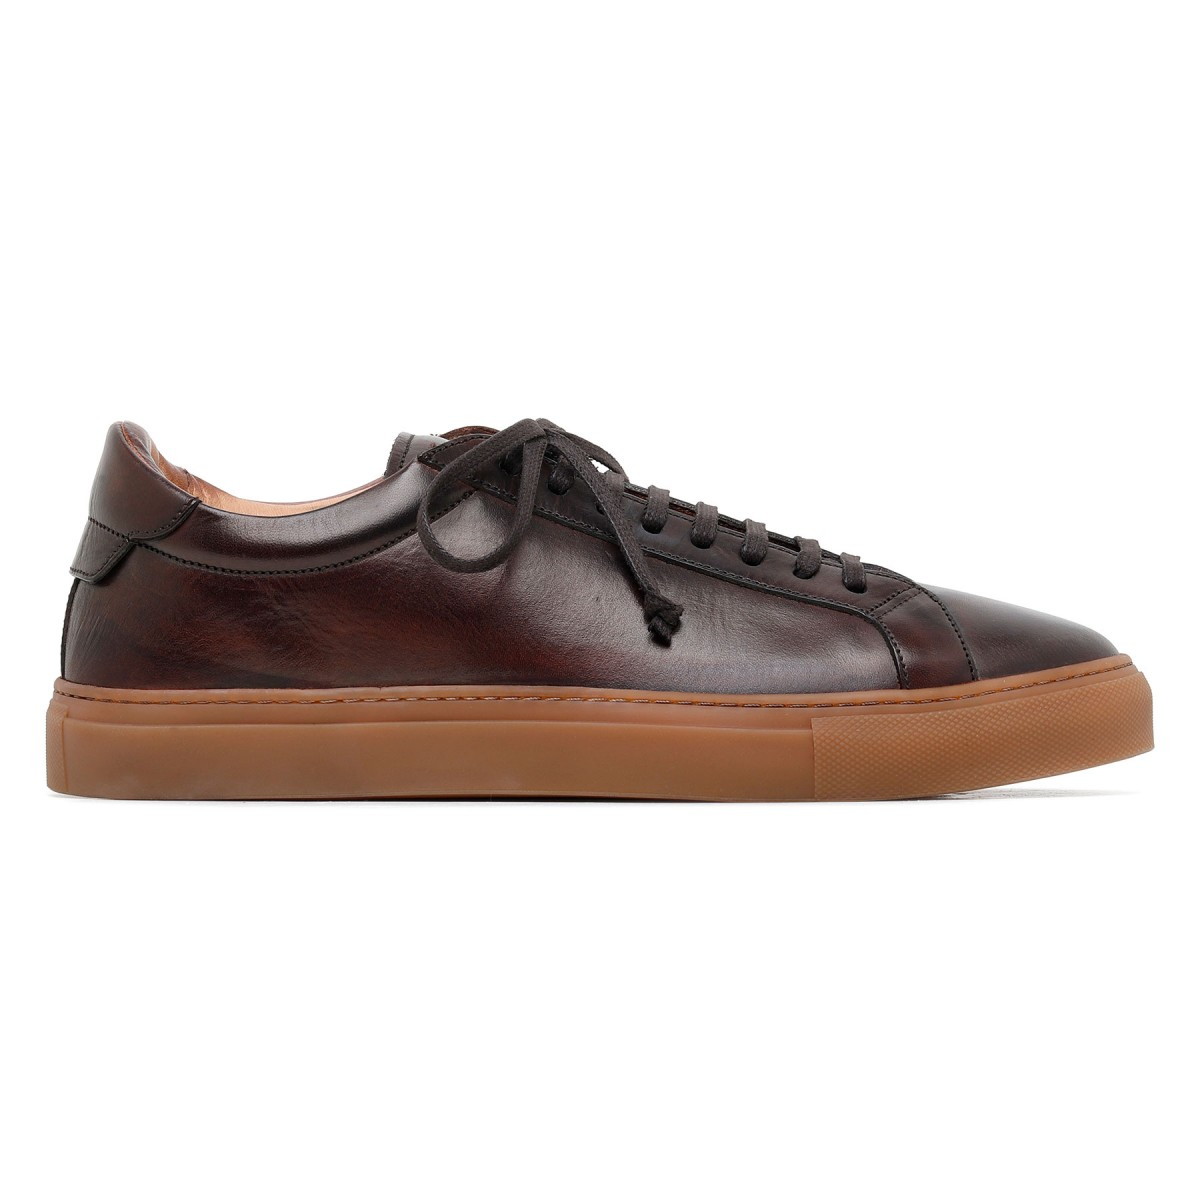 Romilly dark brown leather sneakers